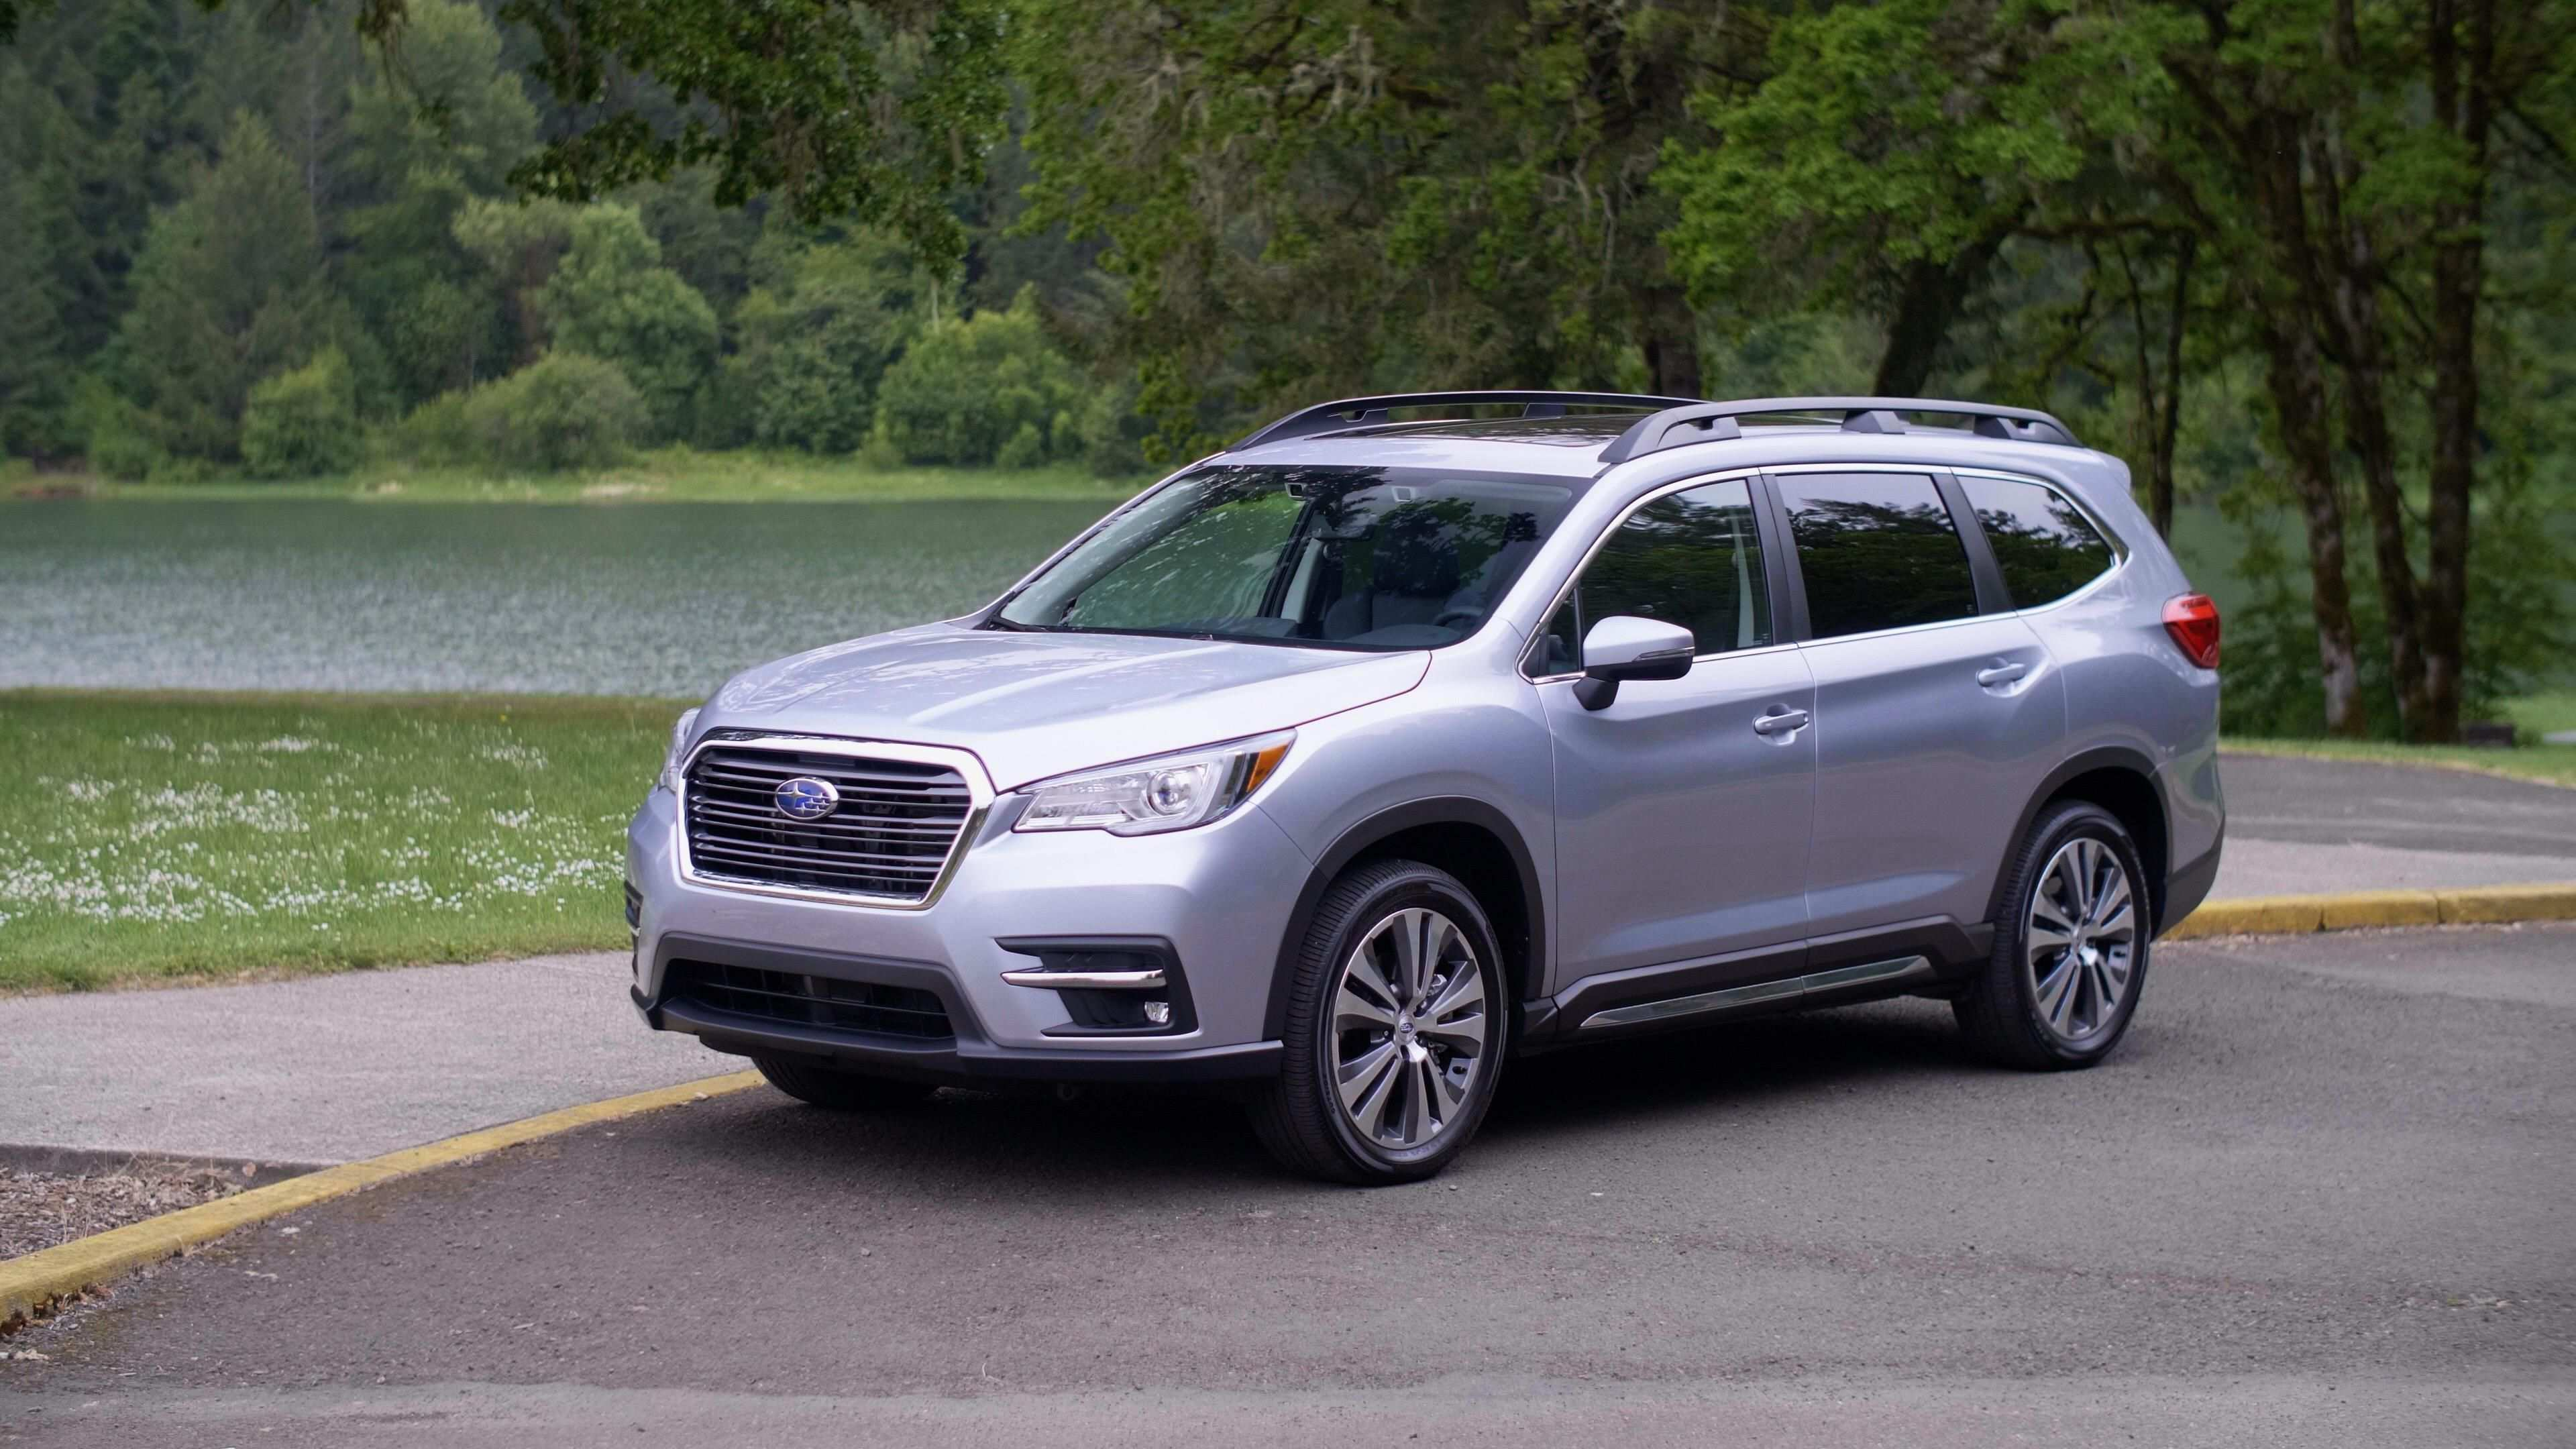 91 New Subaru Ascent 2019 Vs 2020 Spy Shoot